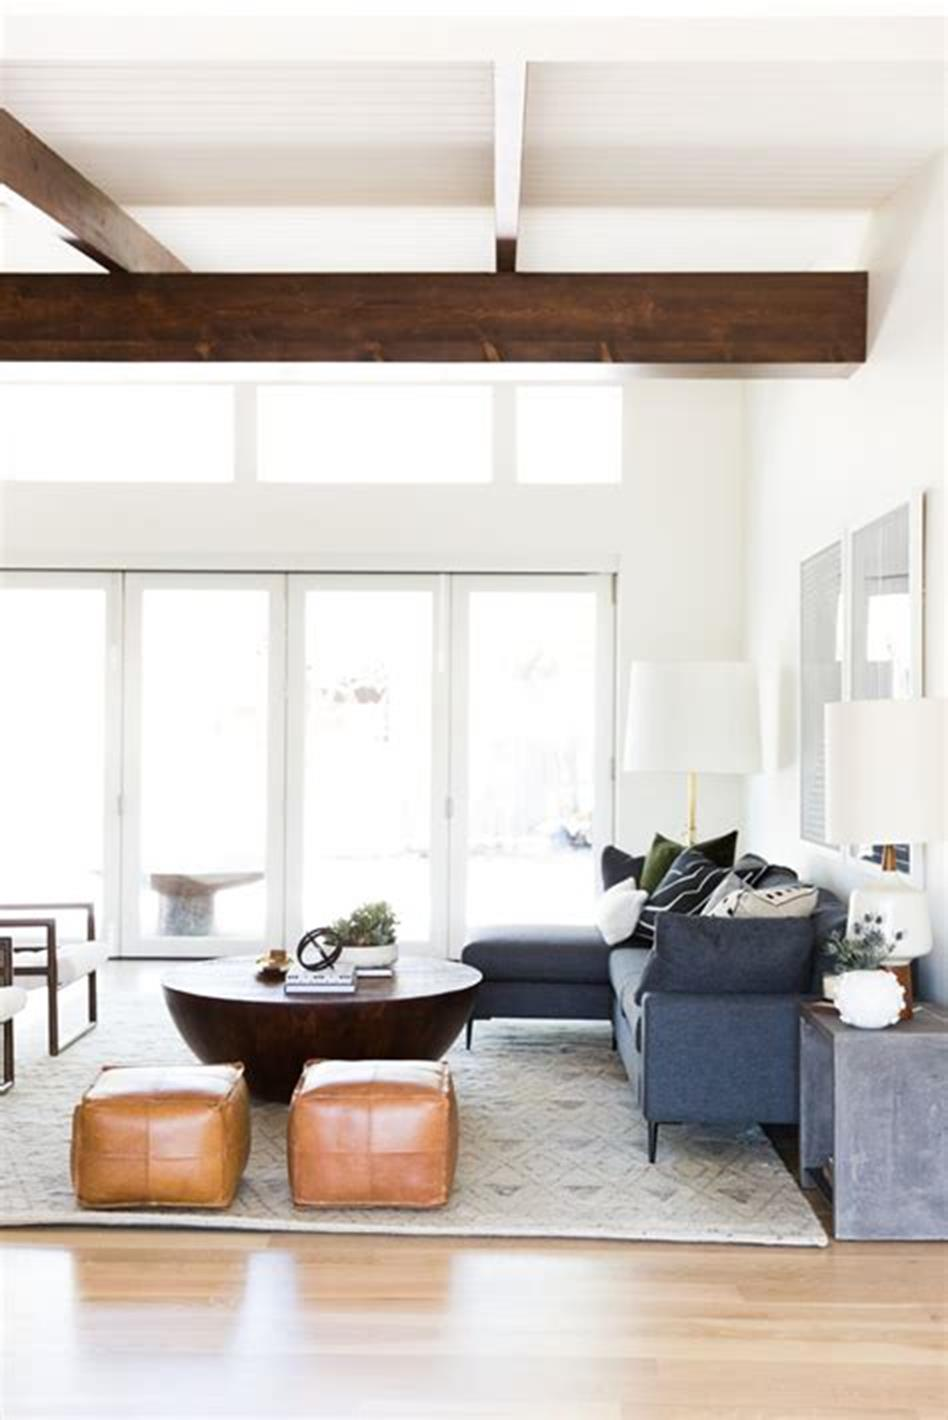 47 Great Mid Century Modern Living room Design and Decorating Ideas 8